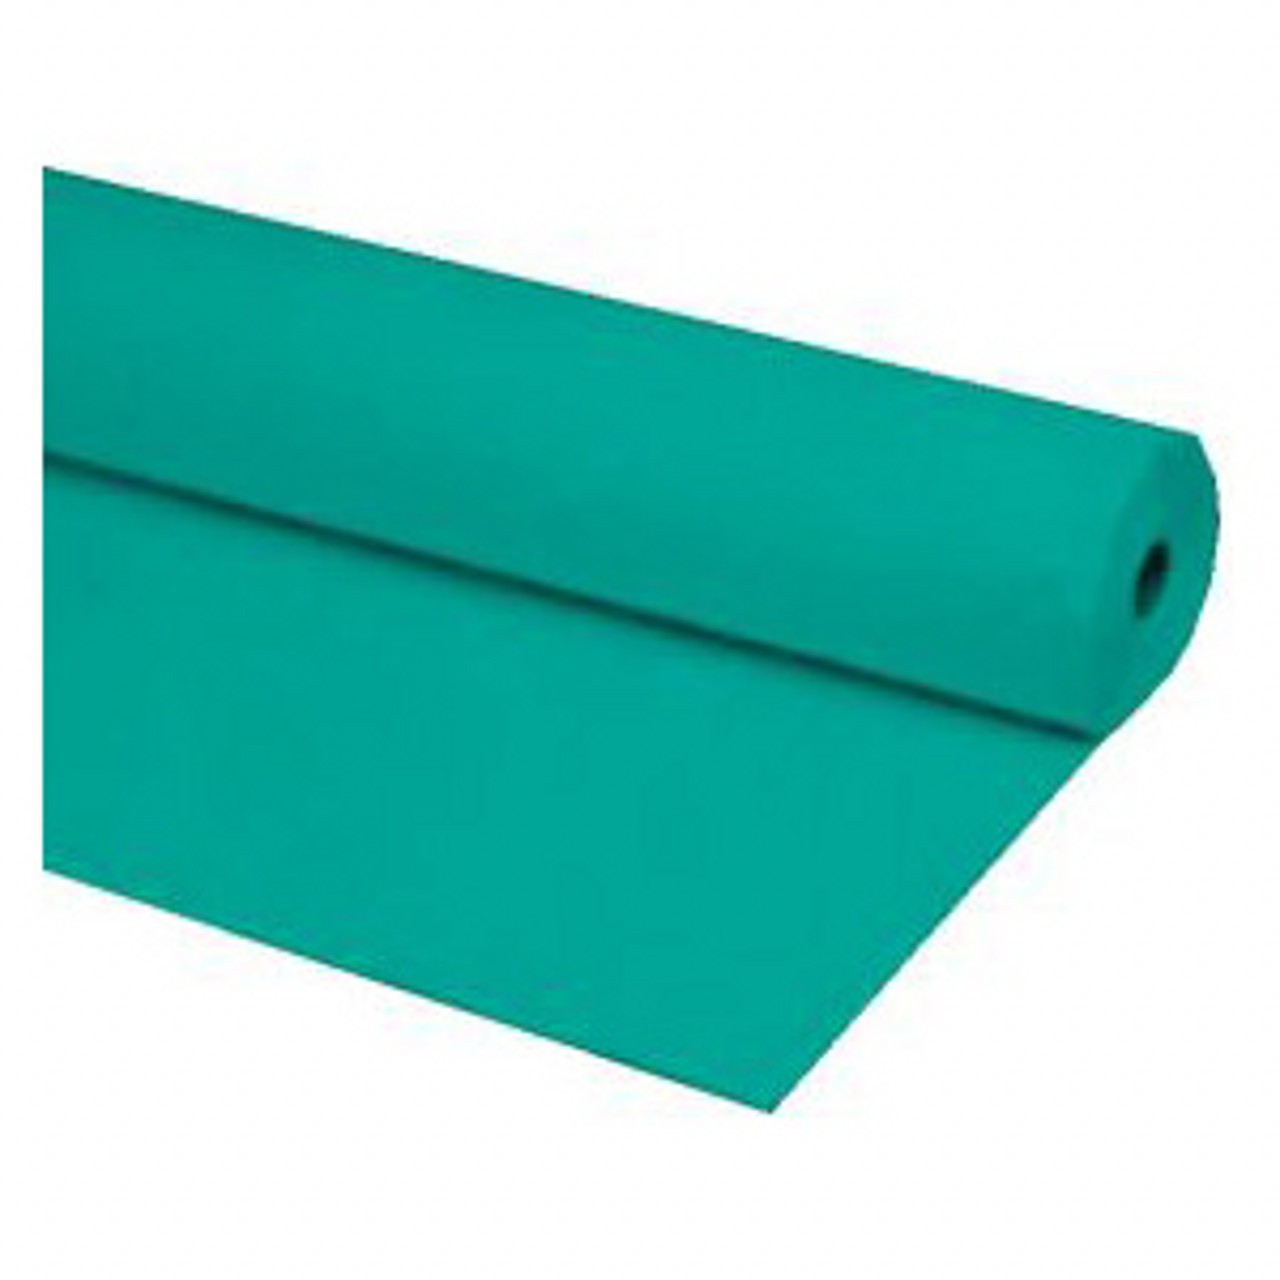 "40""x100 ft TEAL Heavy Duty Banquet Roll Plastic Table Cloth"